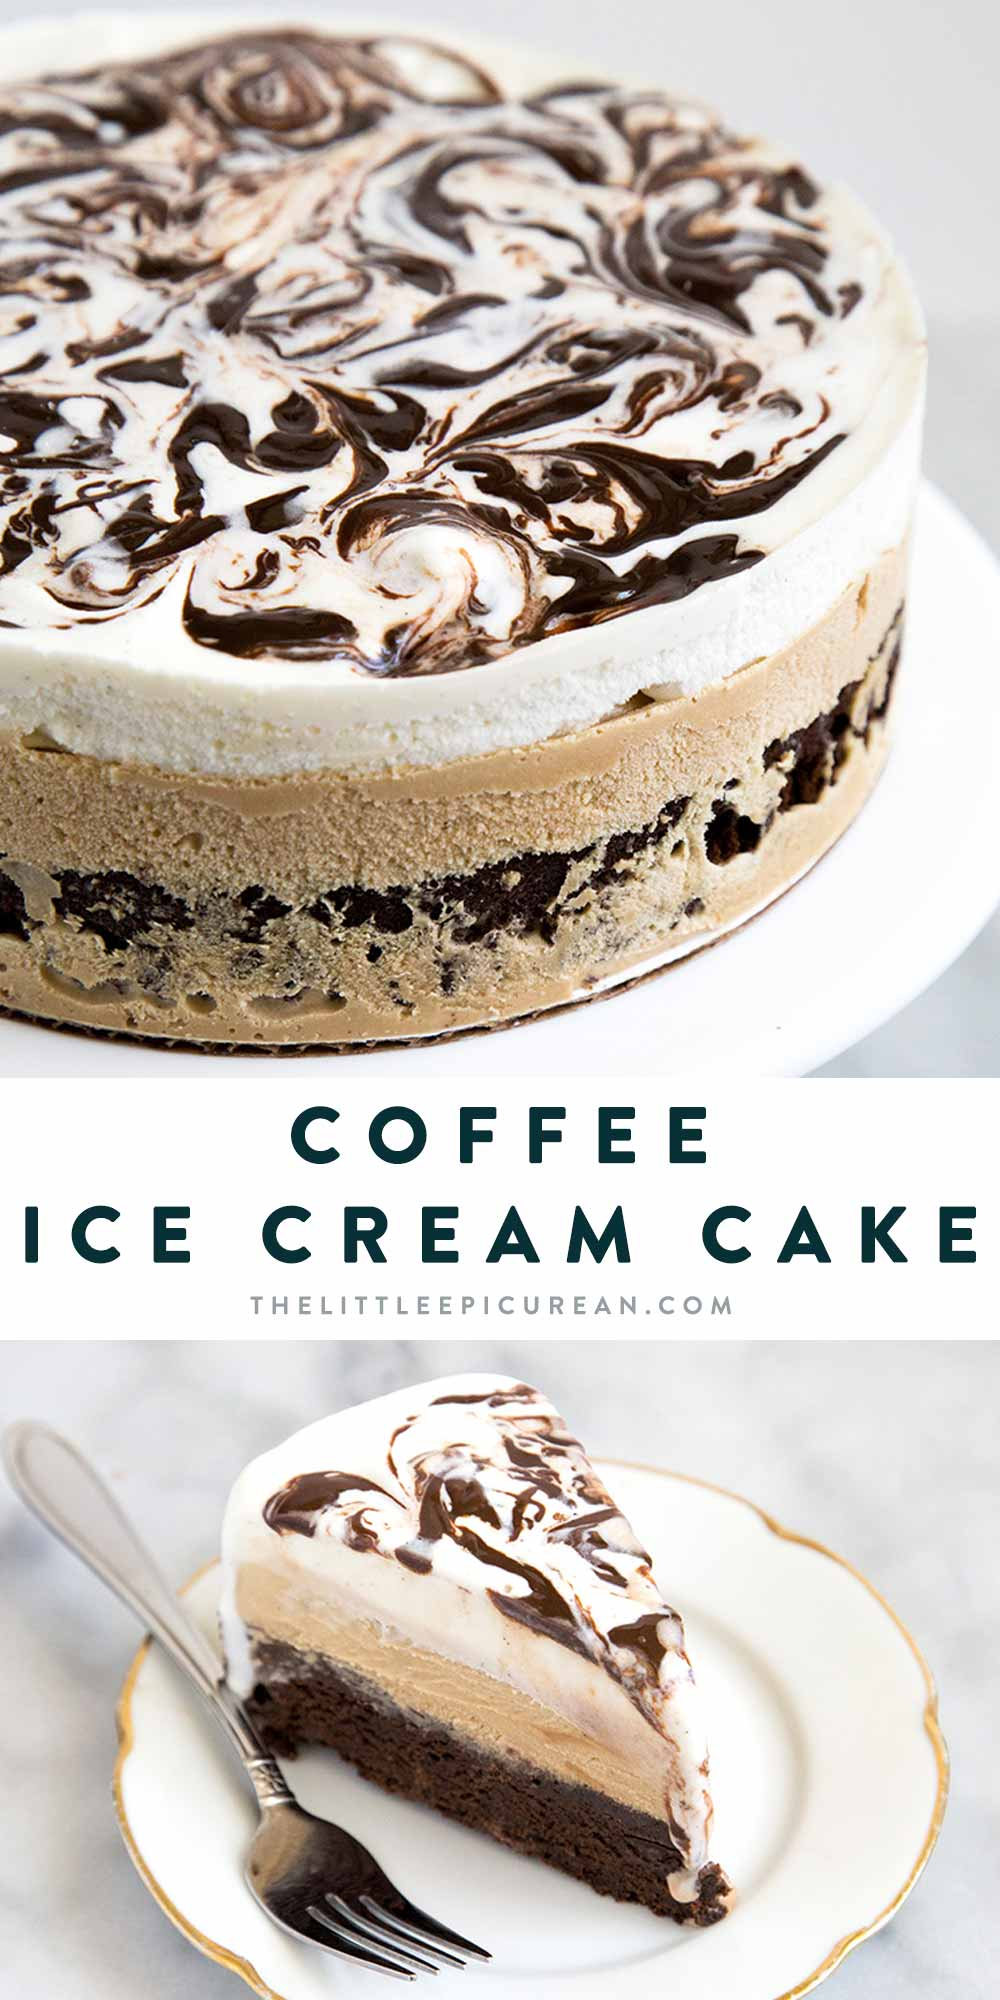 Coffee Ice Cream Cake. This decadent dessert starts with a brownie layer, followed by coffee ice cream and a layer of vanilla ice cream swirled with fudge